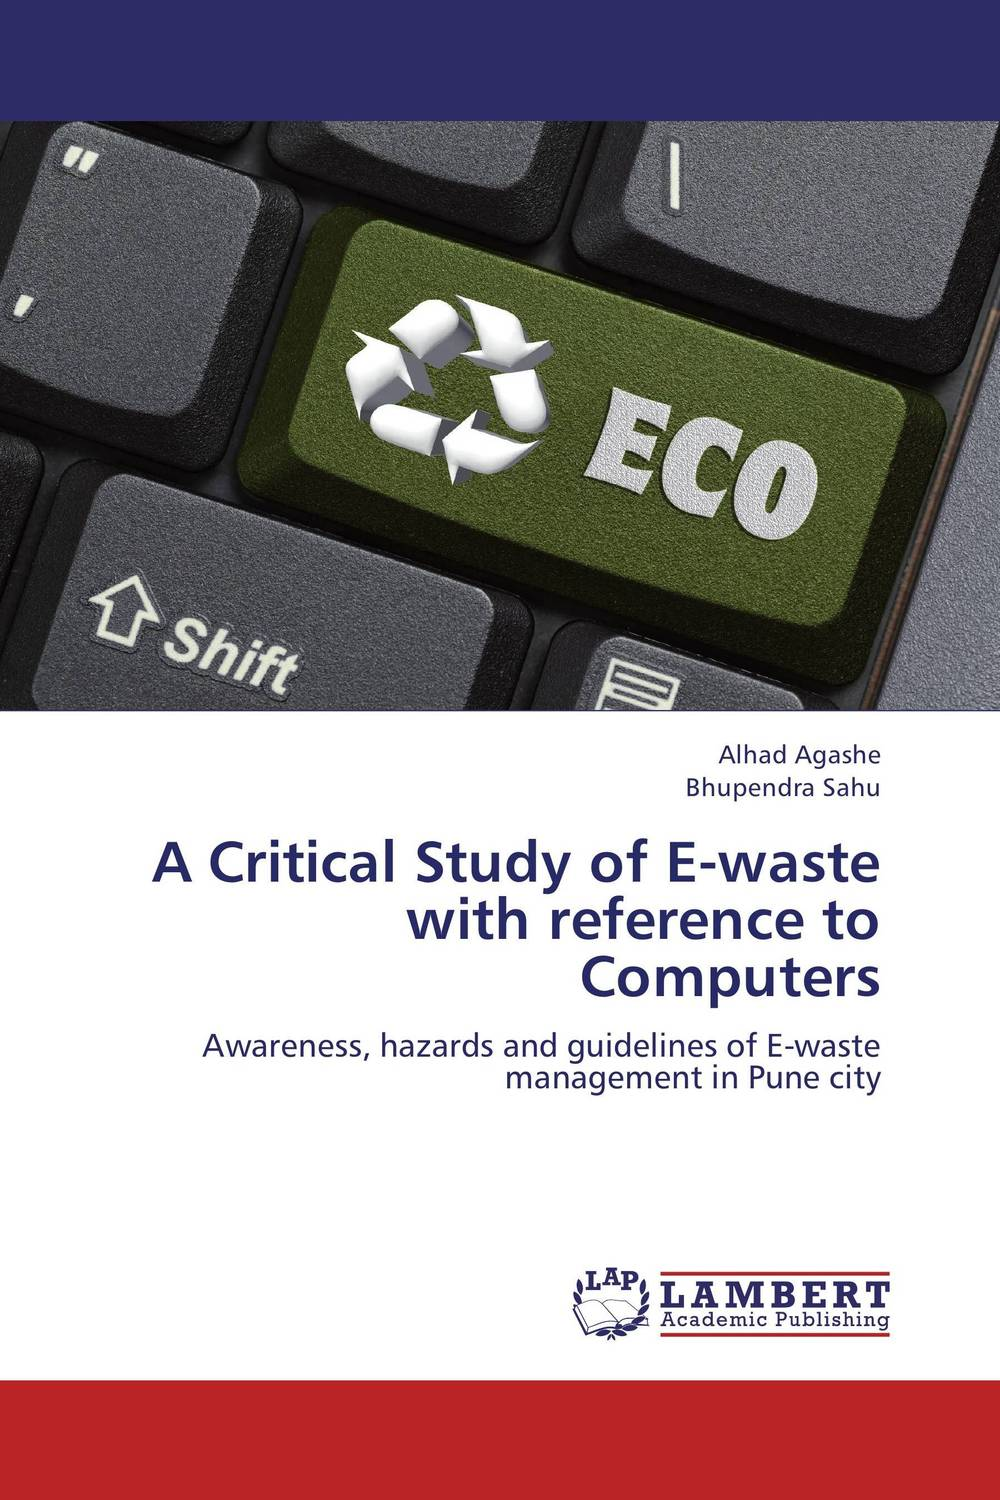 A Critical Study of E-waste with reference to Computers a study of the religio political thought of abdurrahman wahid